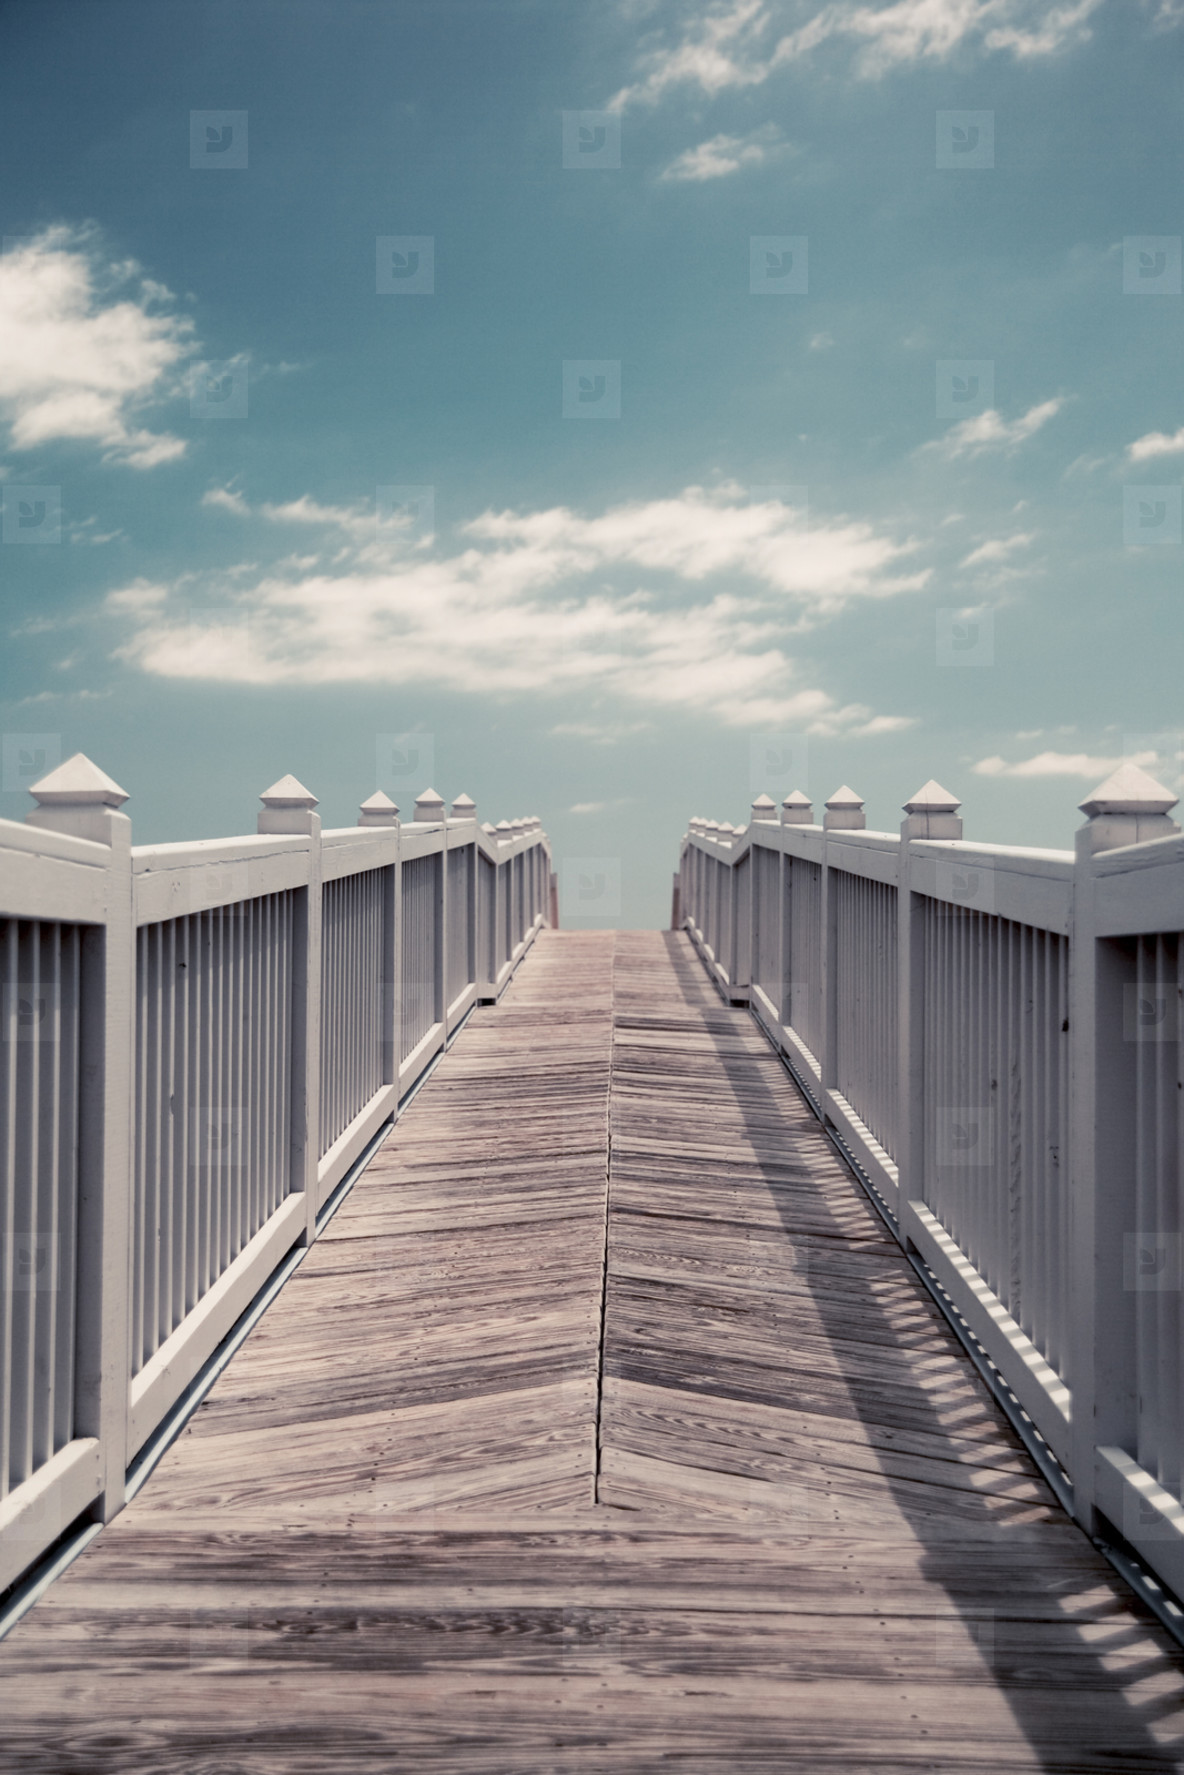 Boardwalk access to beach